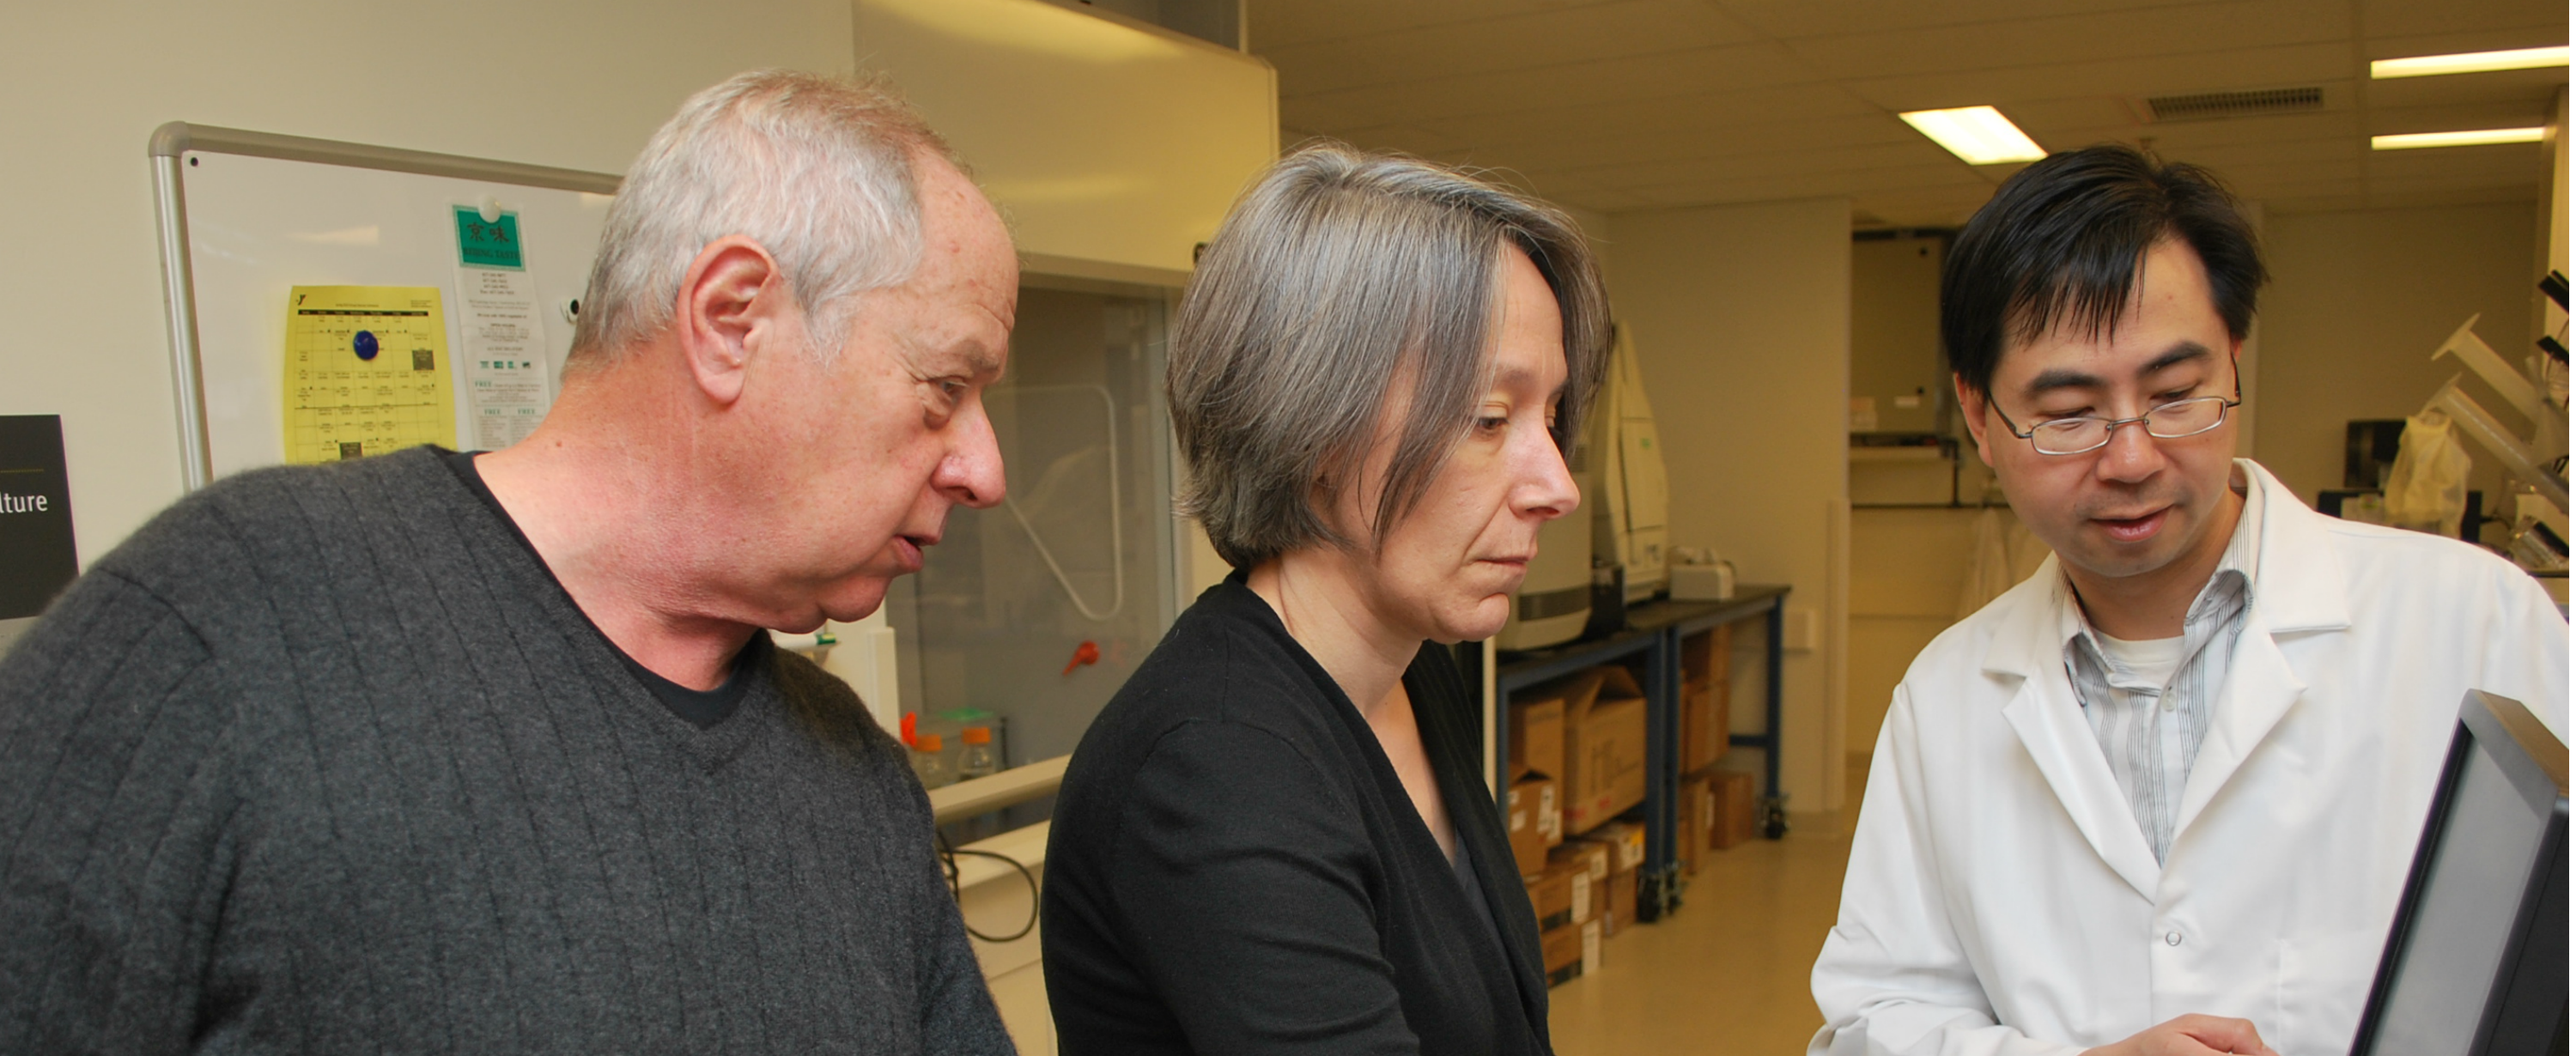 Researchers in the Fatigue Lab